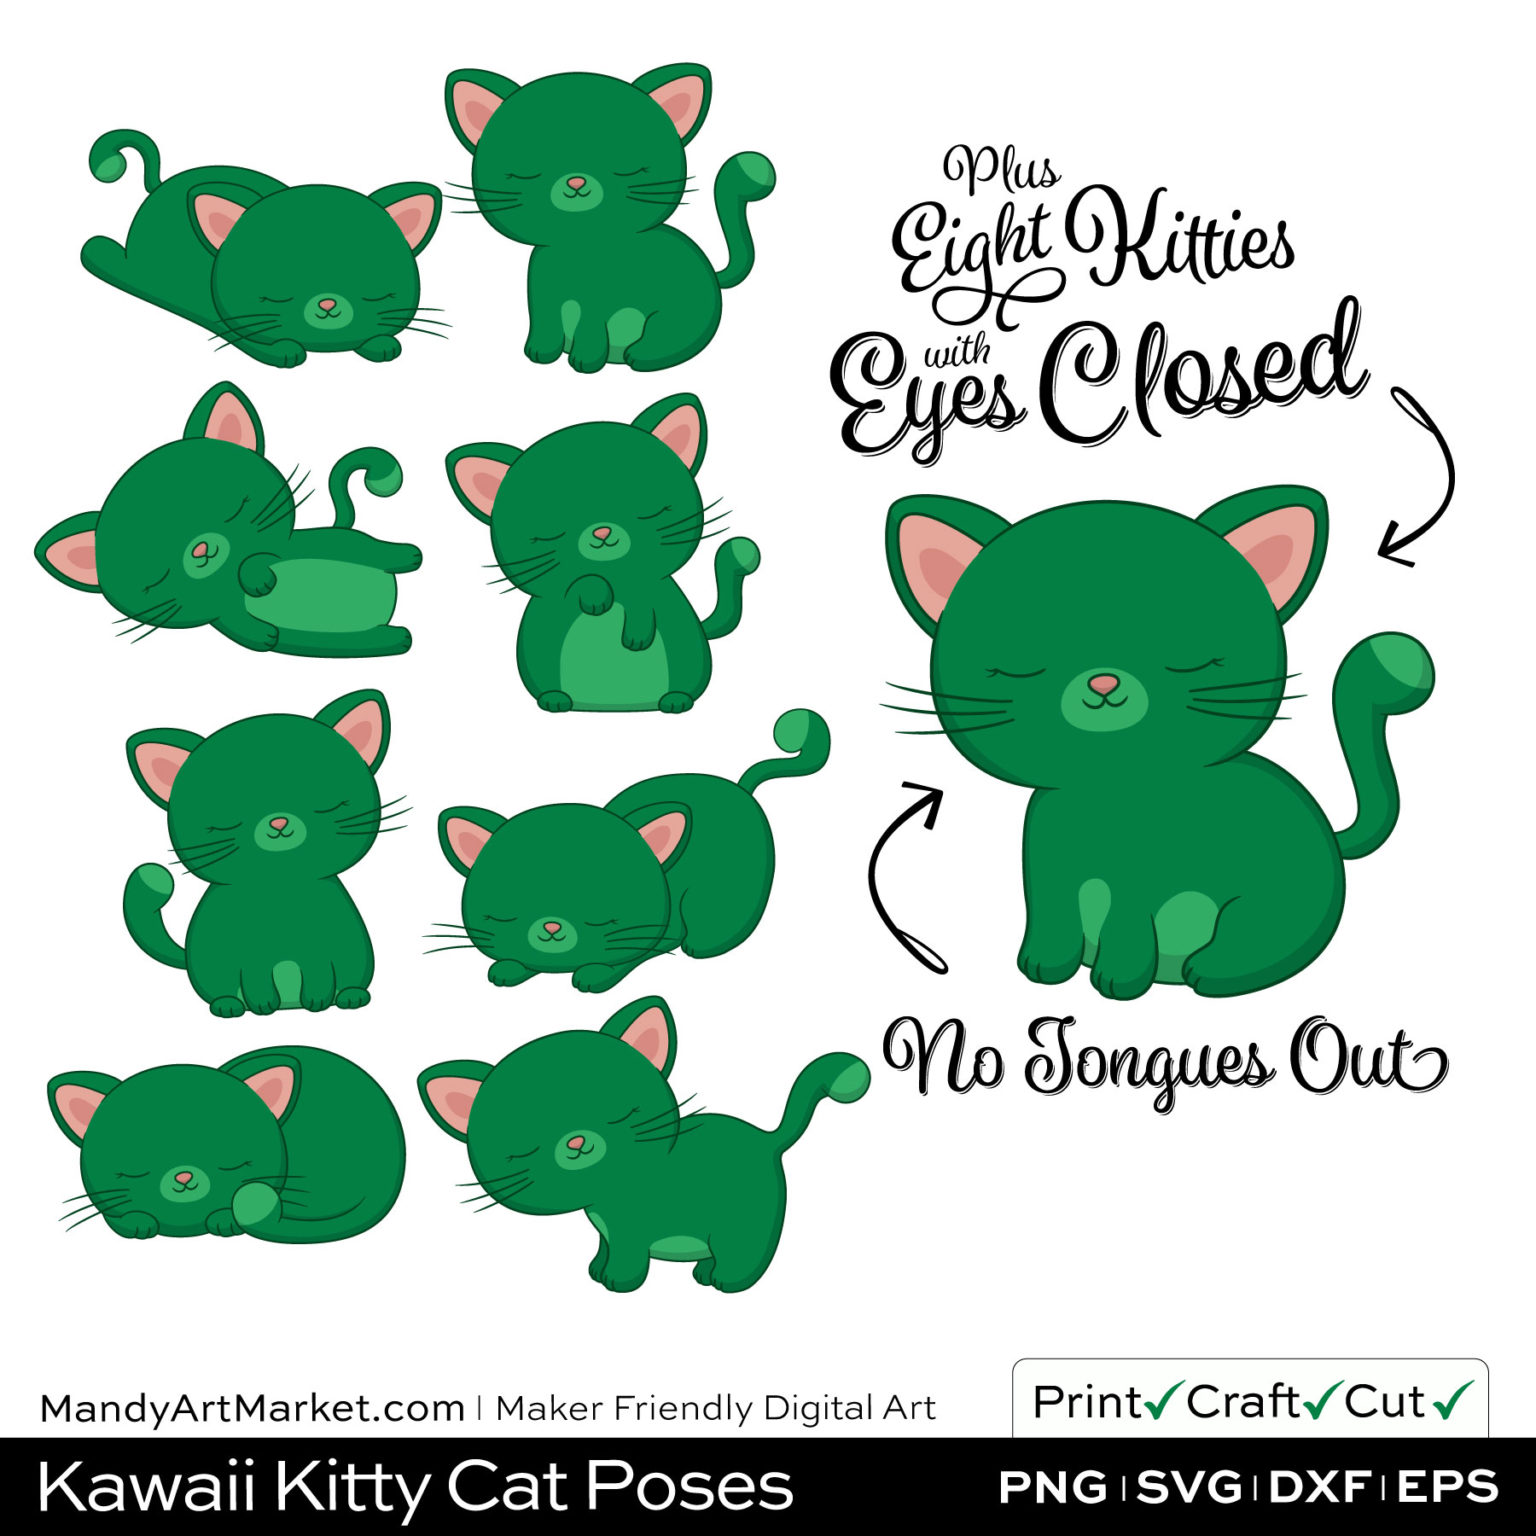 Emerald Green Kawaii Kitty Cat Poses Clipart PNGs Included in Download